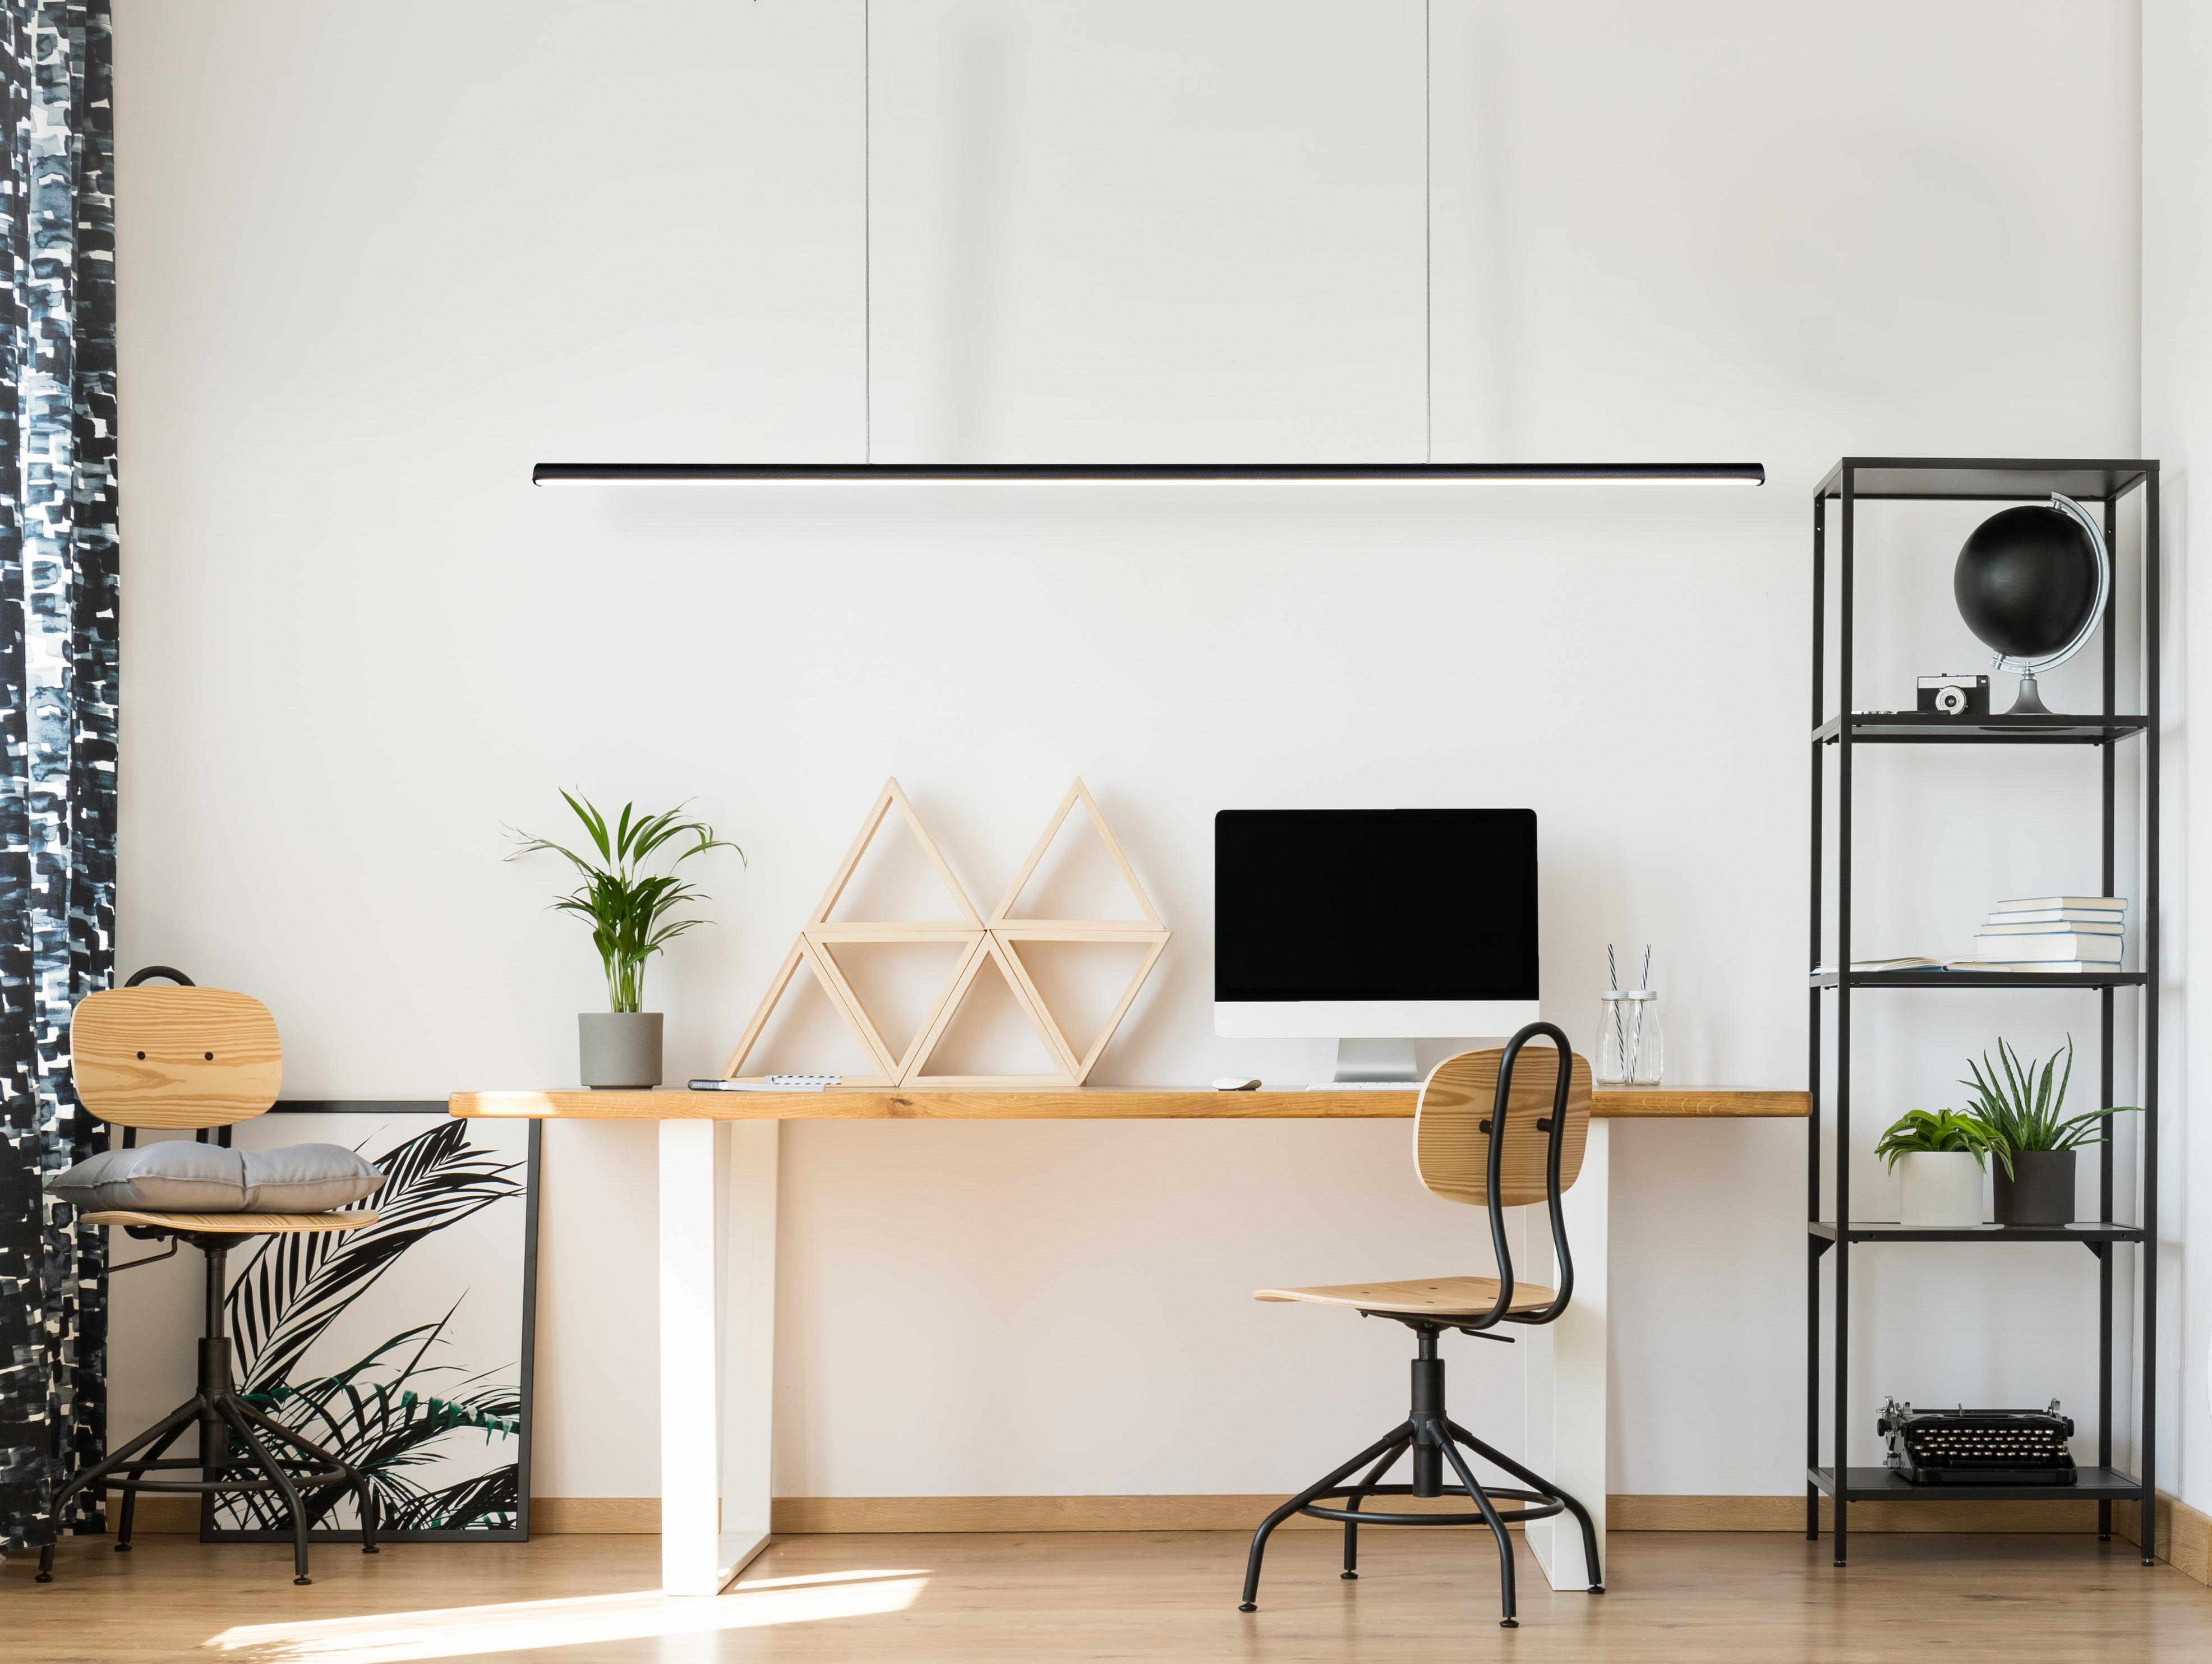 Led linear pendant used in a modern office setting